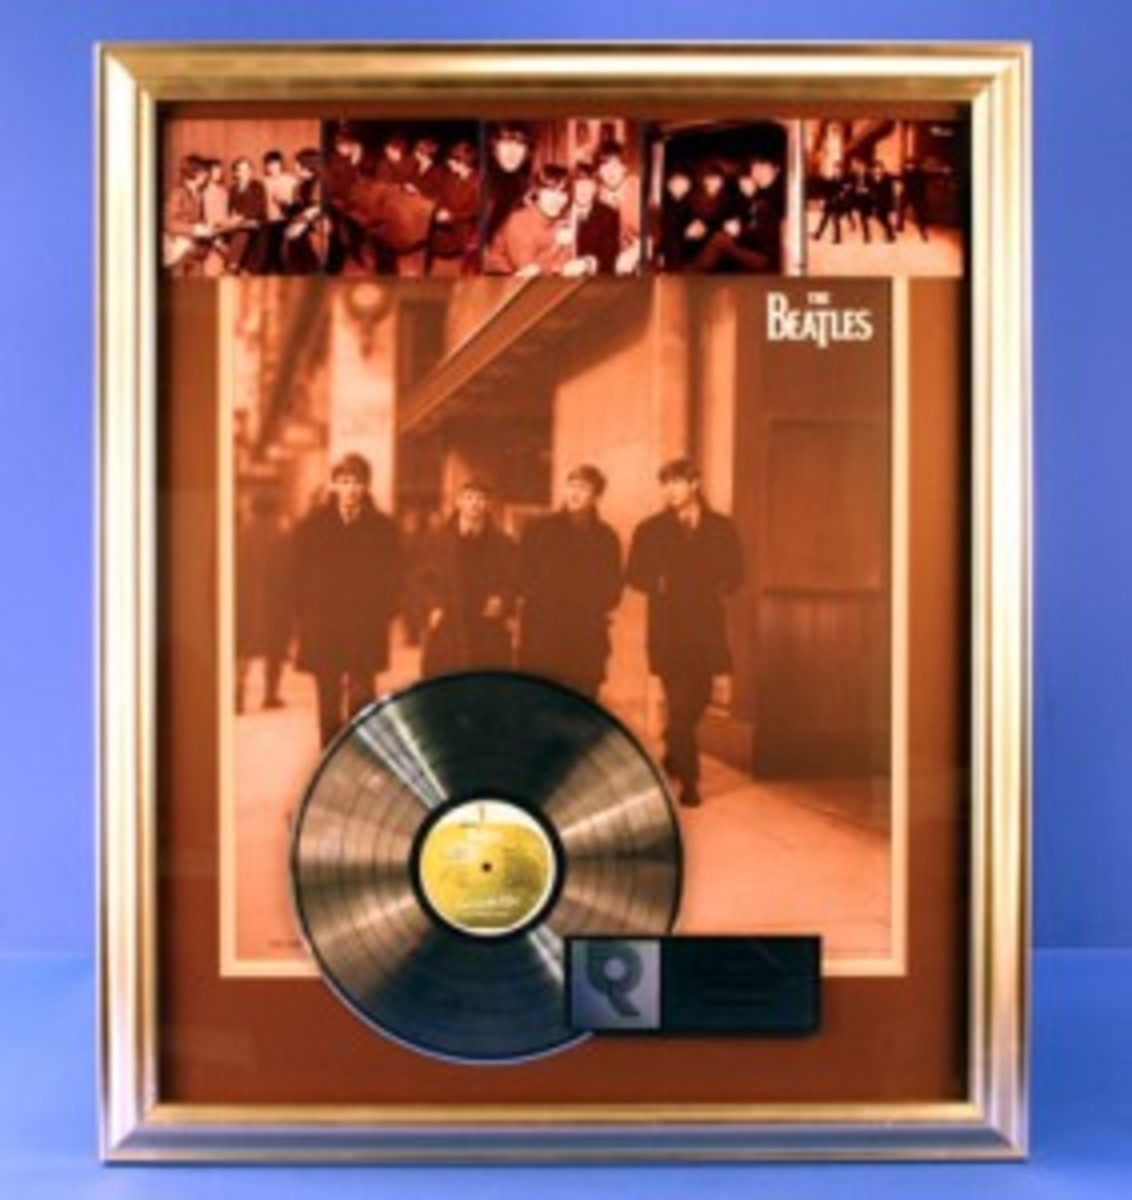 Beatles BBC Award